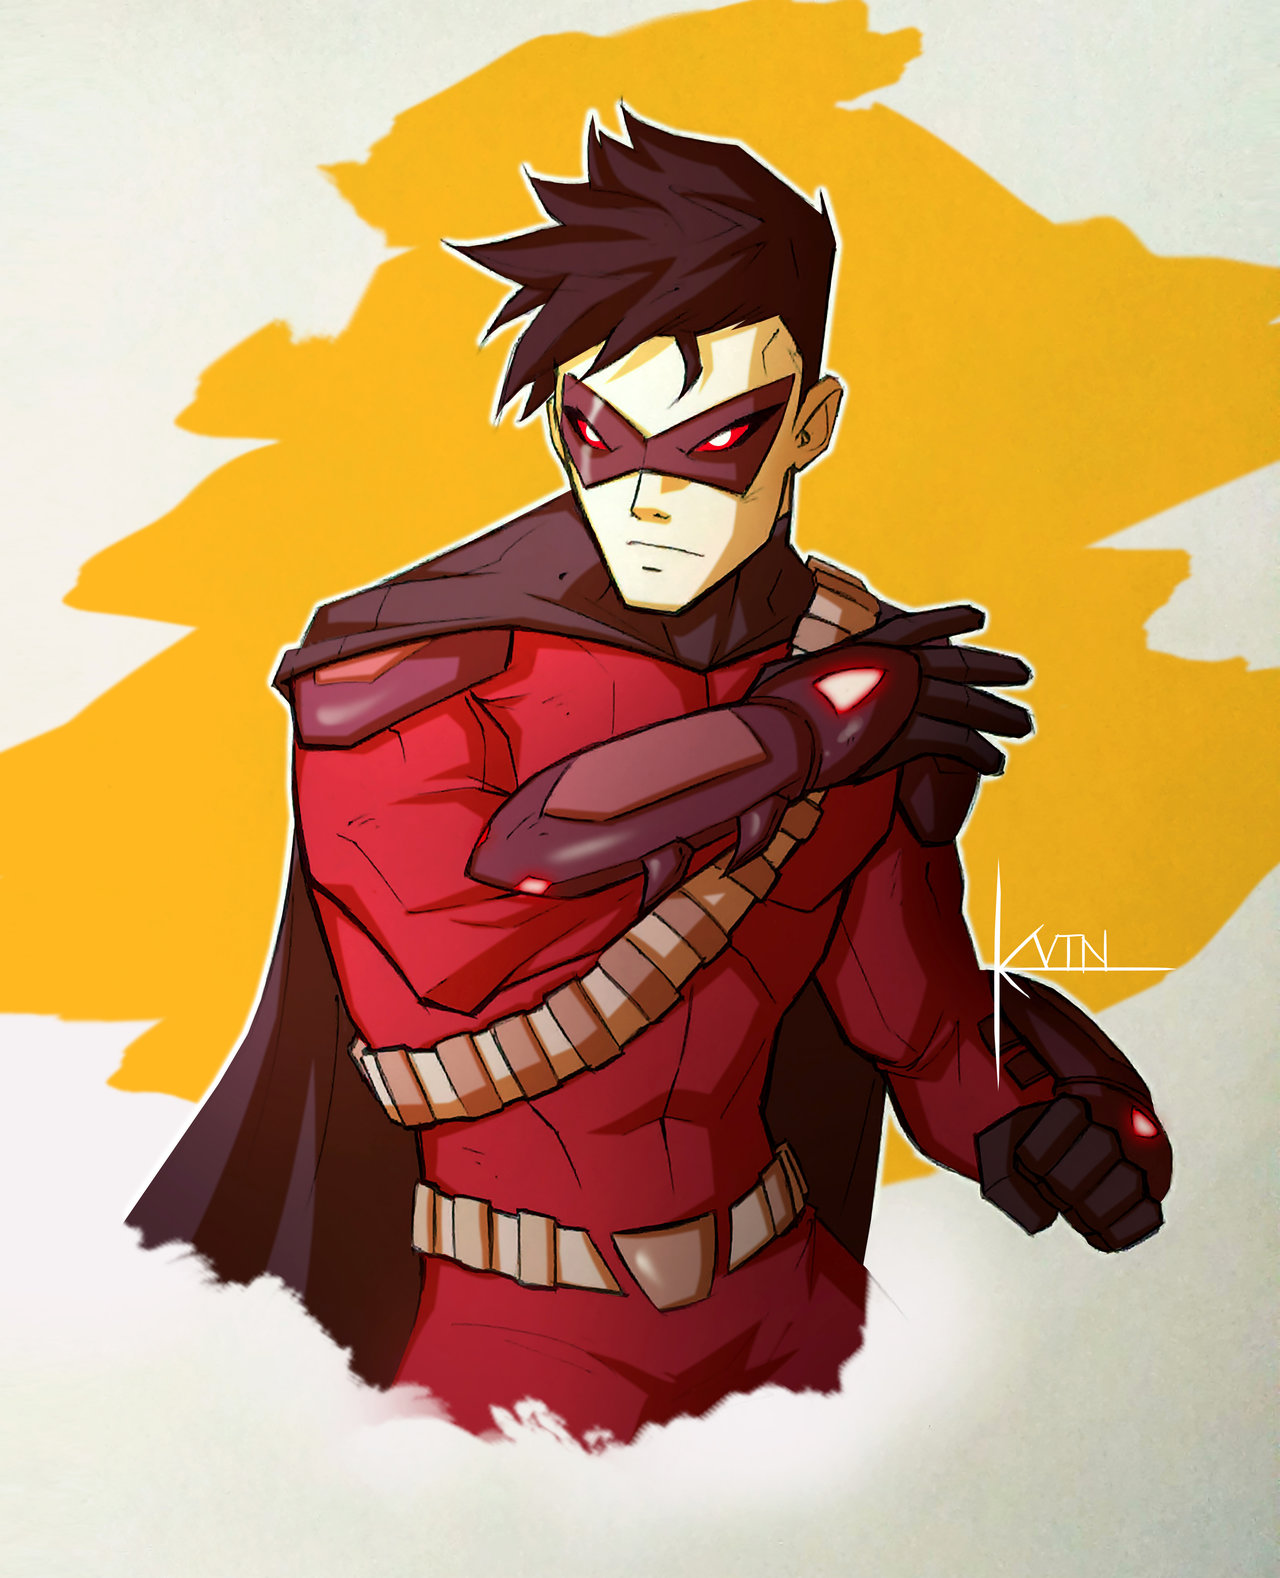 Drawn robin red robin Red on COLOR  SOB: